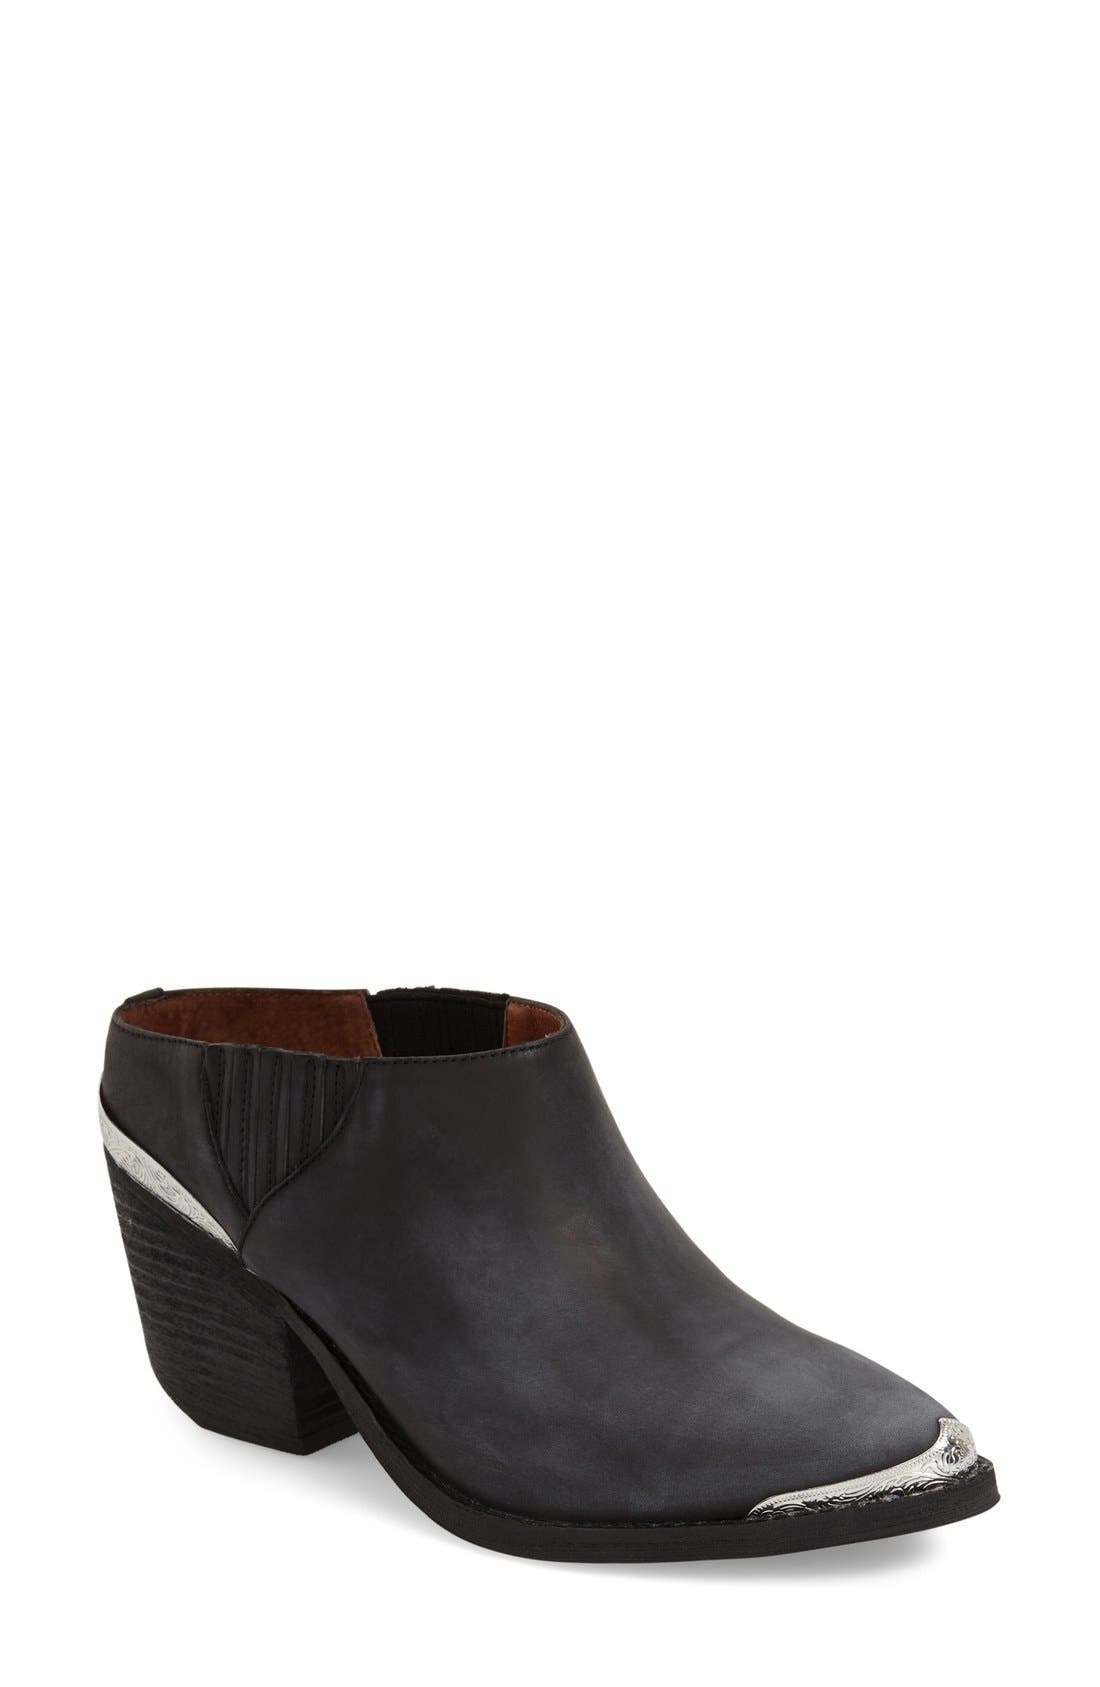 Alternate Image 1 Selected - Jeffrey Campbell 'Rawlins' Bootie (Women)